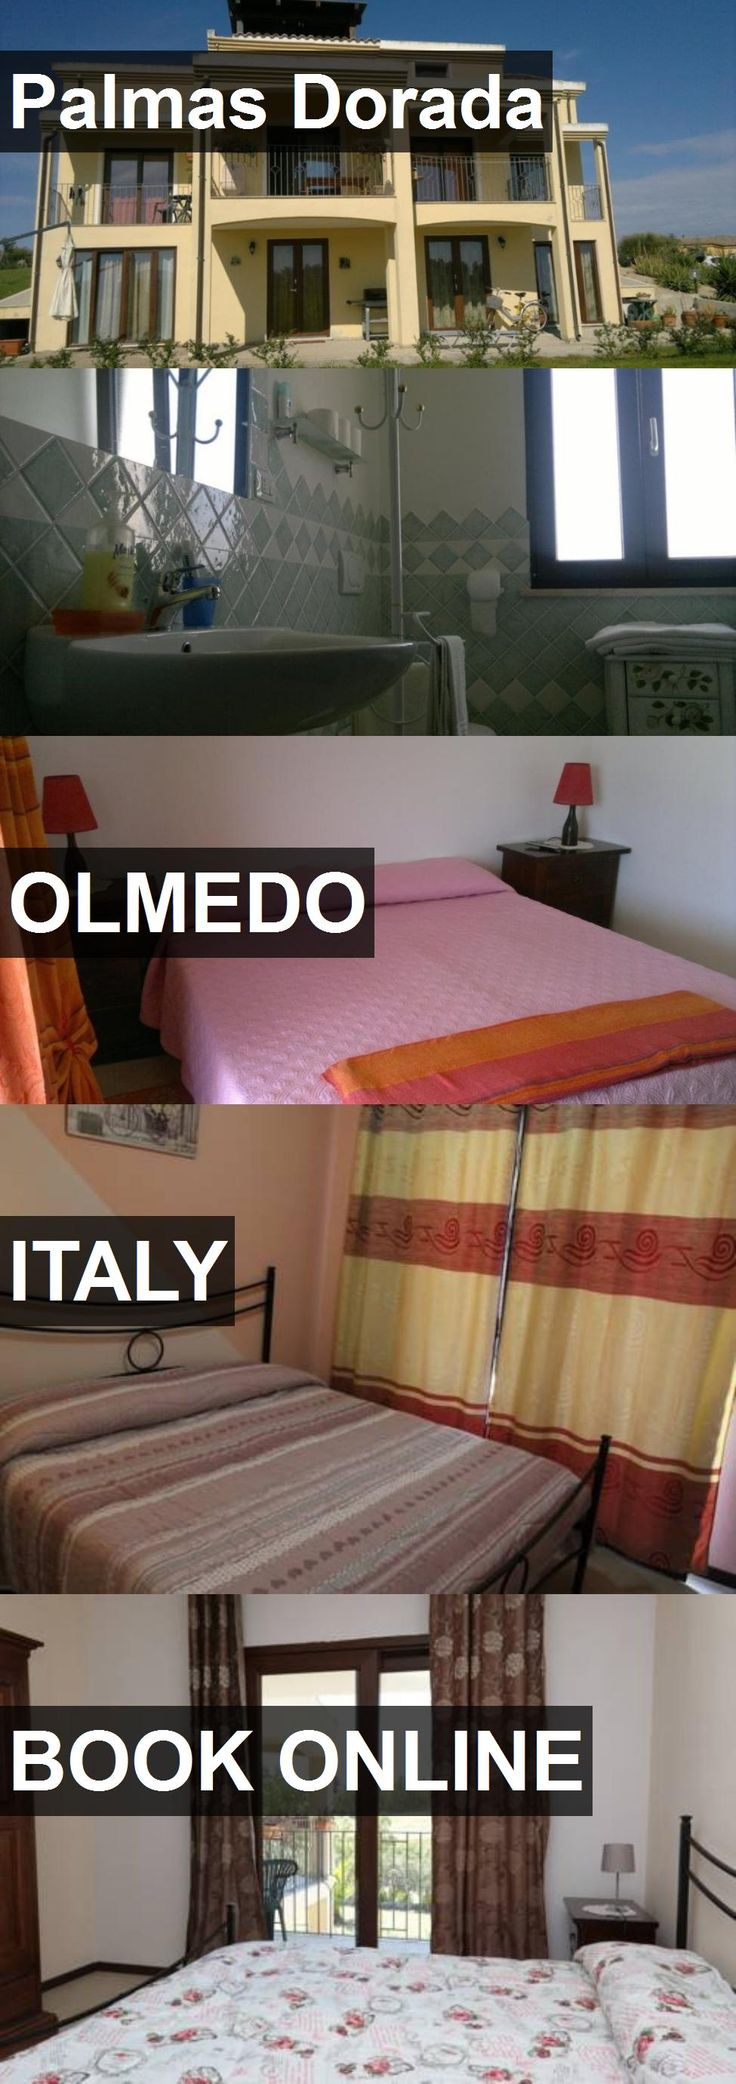 Hotel Palmas Dorada in Olmedo, Italy. For more information, photos, reviews and best prices please follow the link. #Italy #Olmedo #hotel #travel #vacation